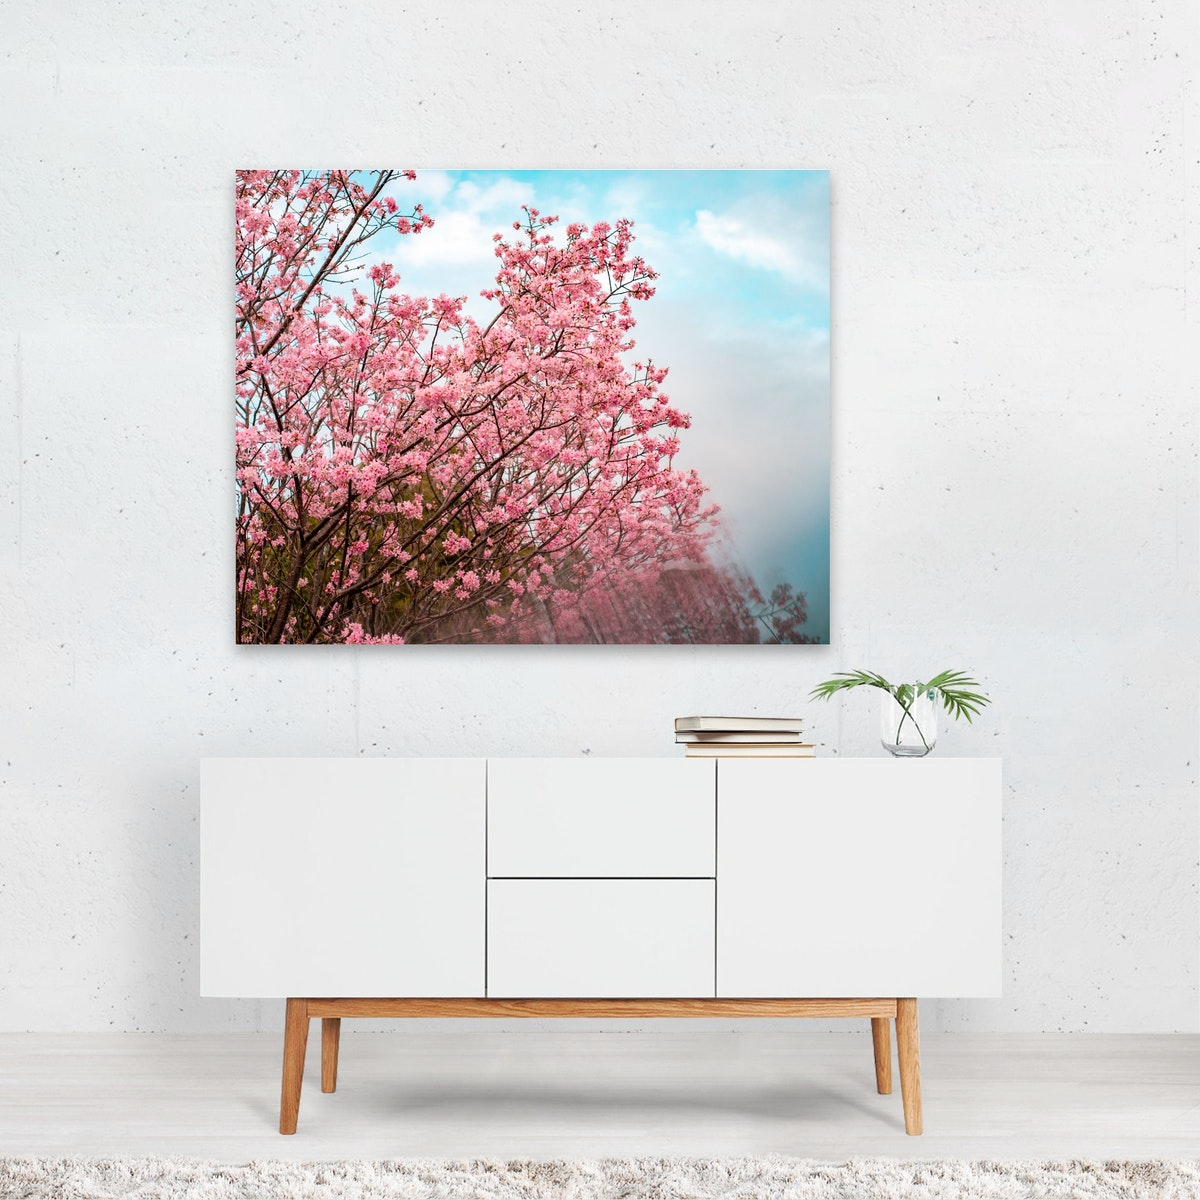 Digital Cherry Blossoms